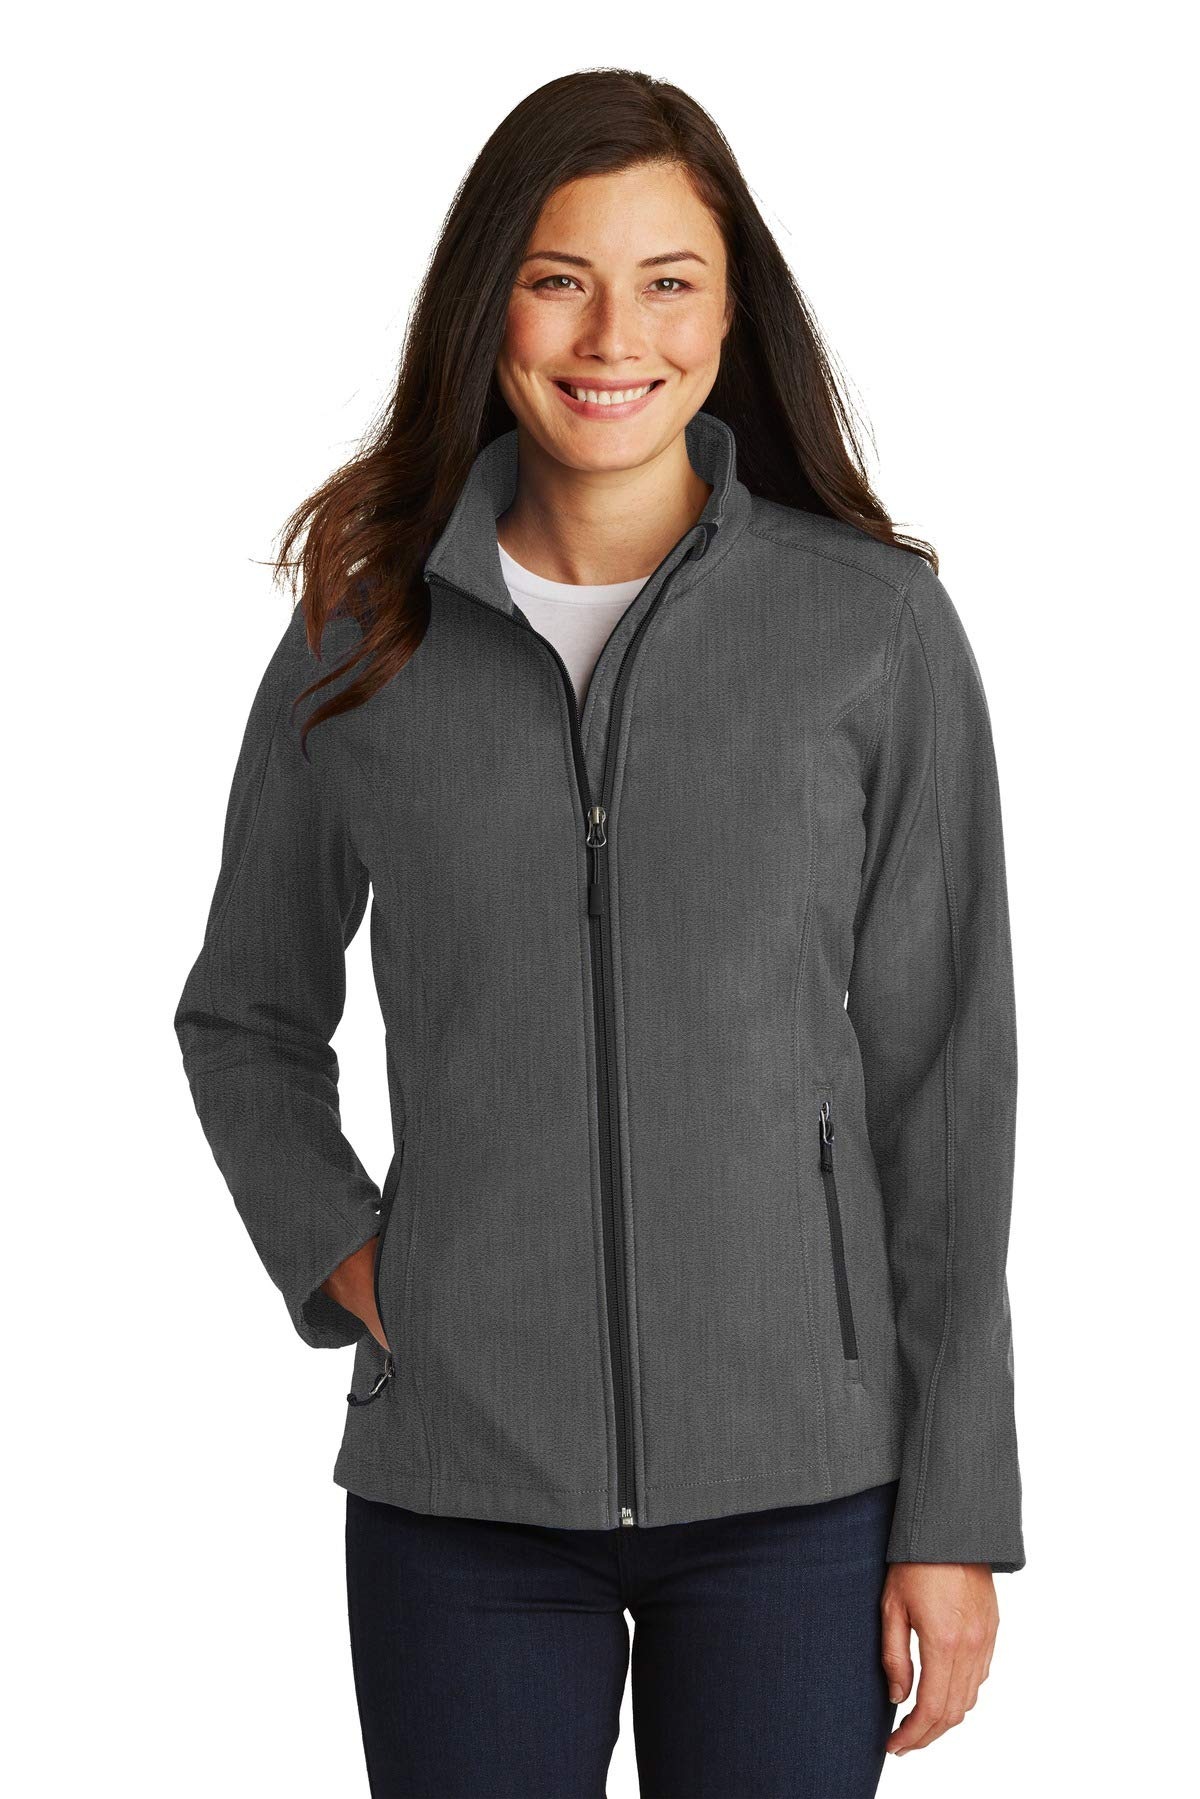 Port Authority Ladies Core Soft Shell Jacket L Black Charcoal Heather by Port Authority